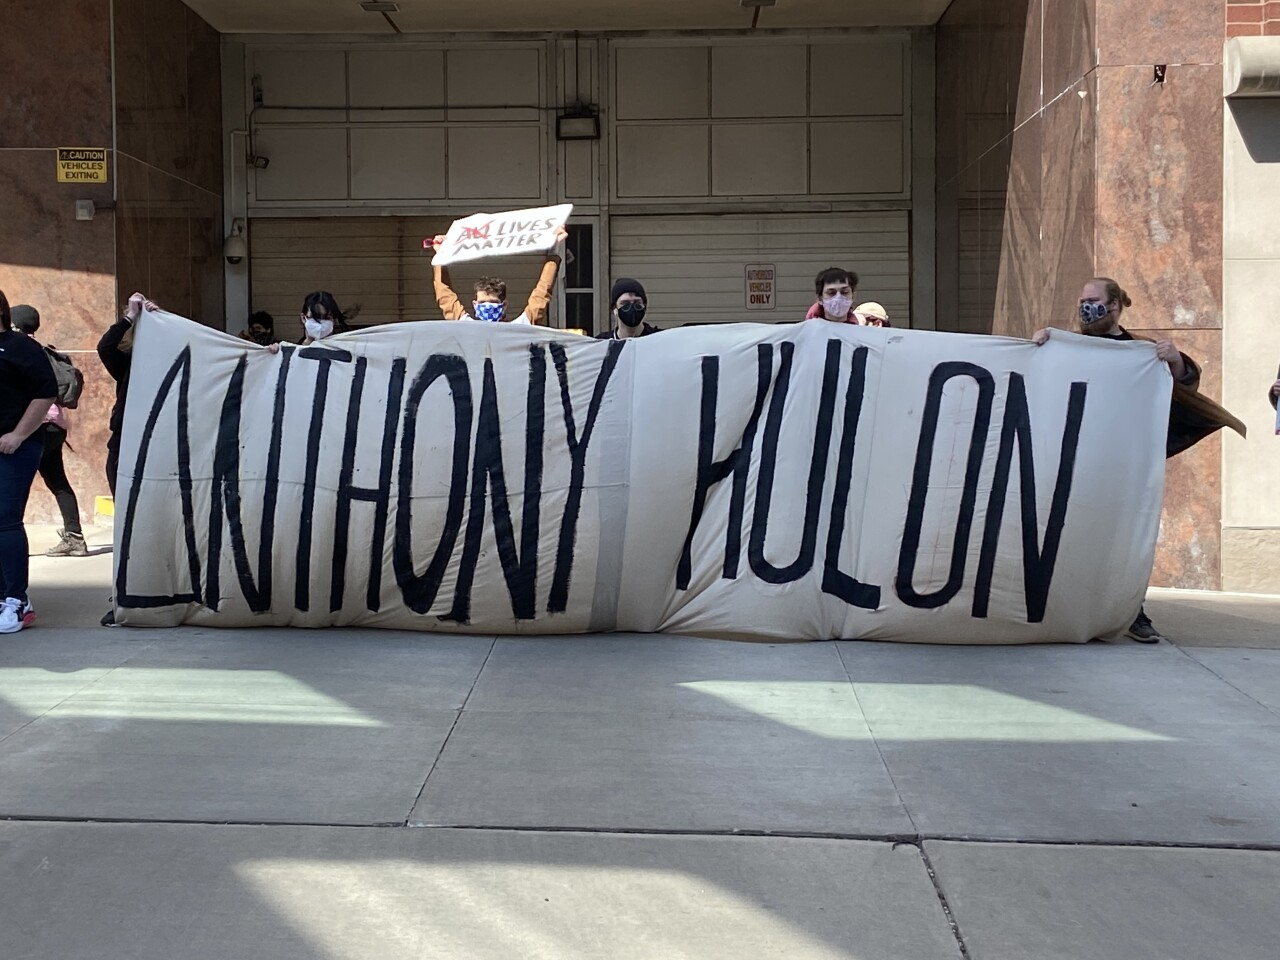 Dozens of protestors gathered to rally for Anthony Hulon's death